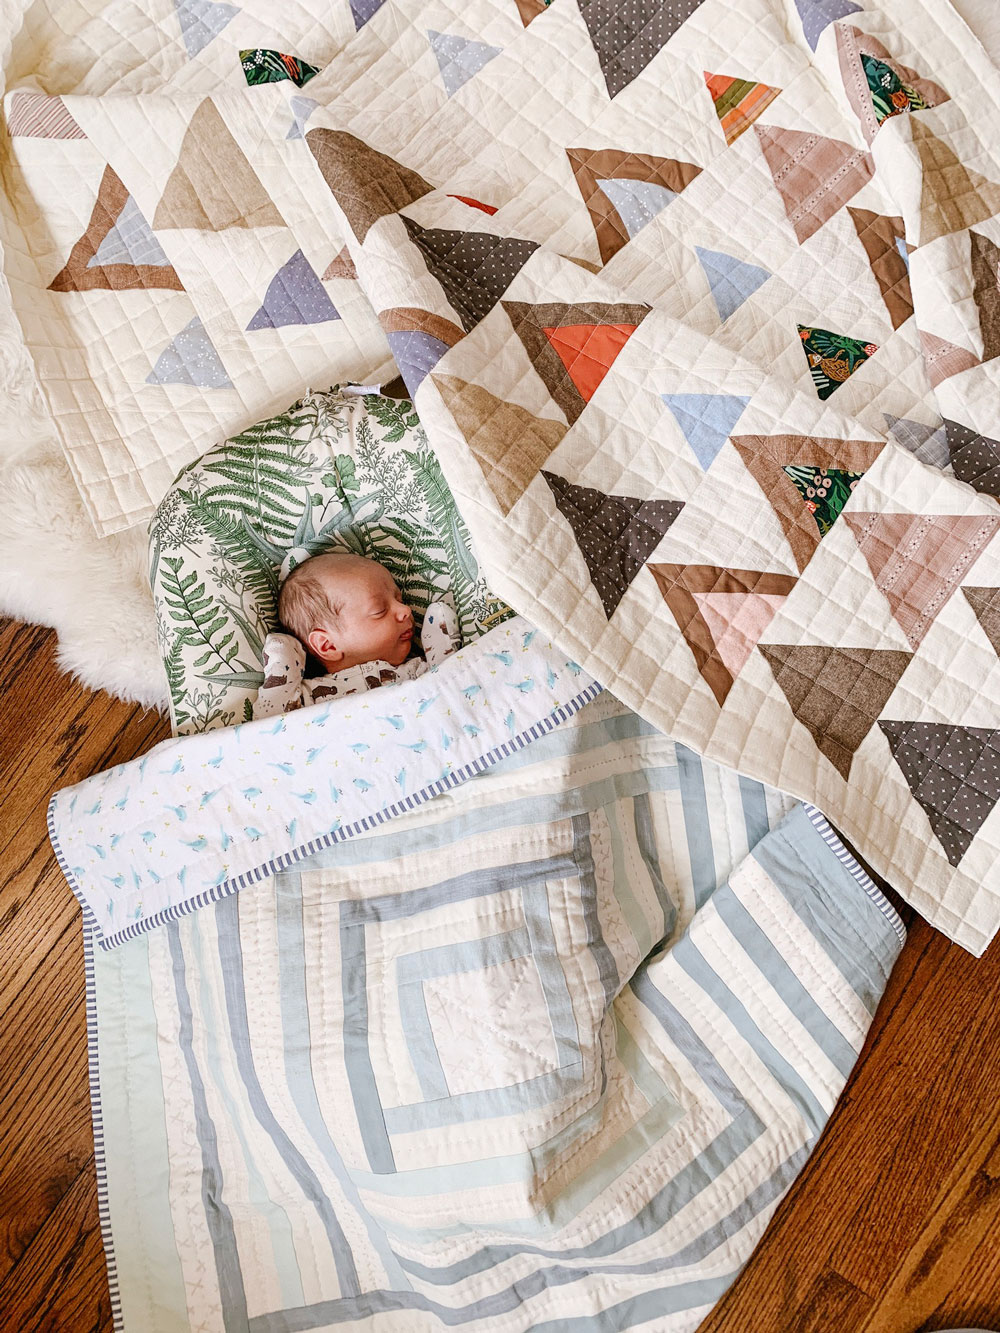 The 10 newborn baby essentials every first time mom should put on their baby registry